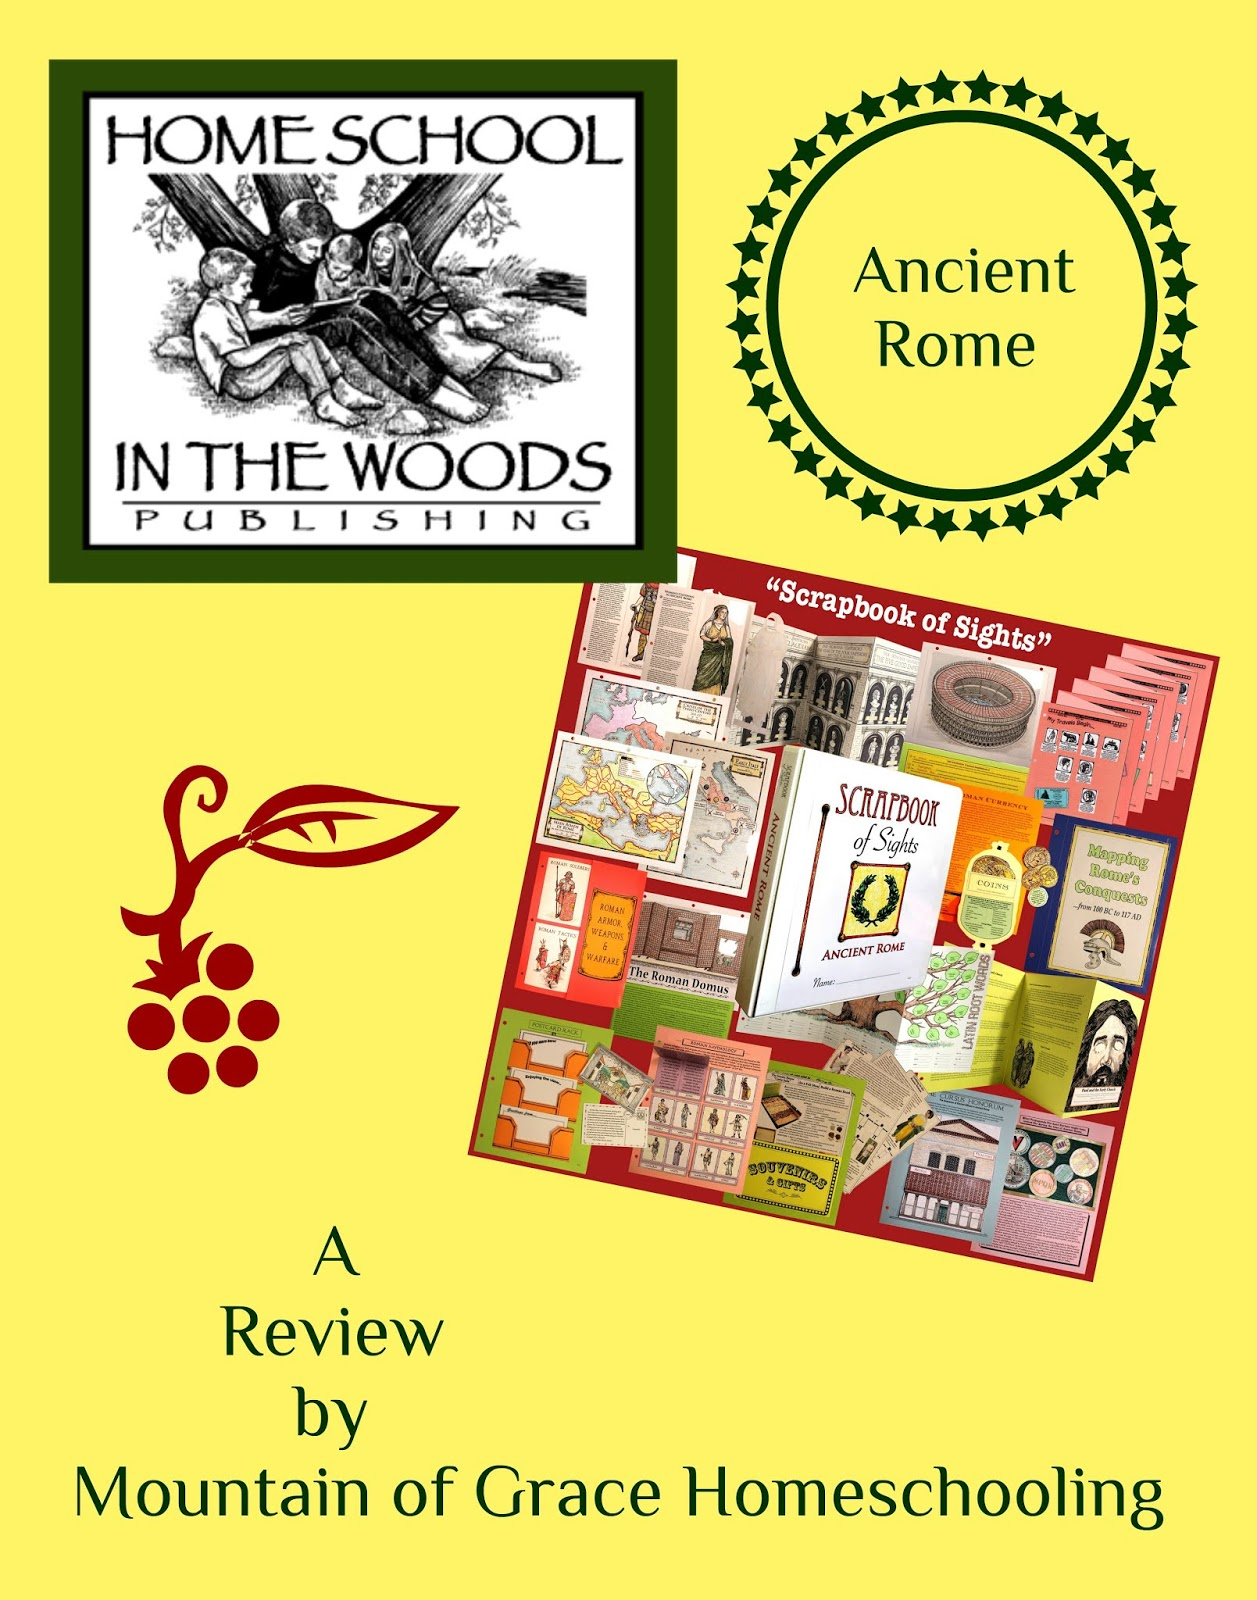 hight resolution of Mountain of Grace Homeschooling: Review~ Project Passport World History  Study: Ancient Rome from Home School in the Woods